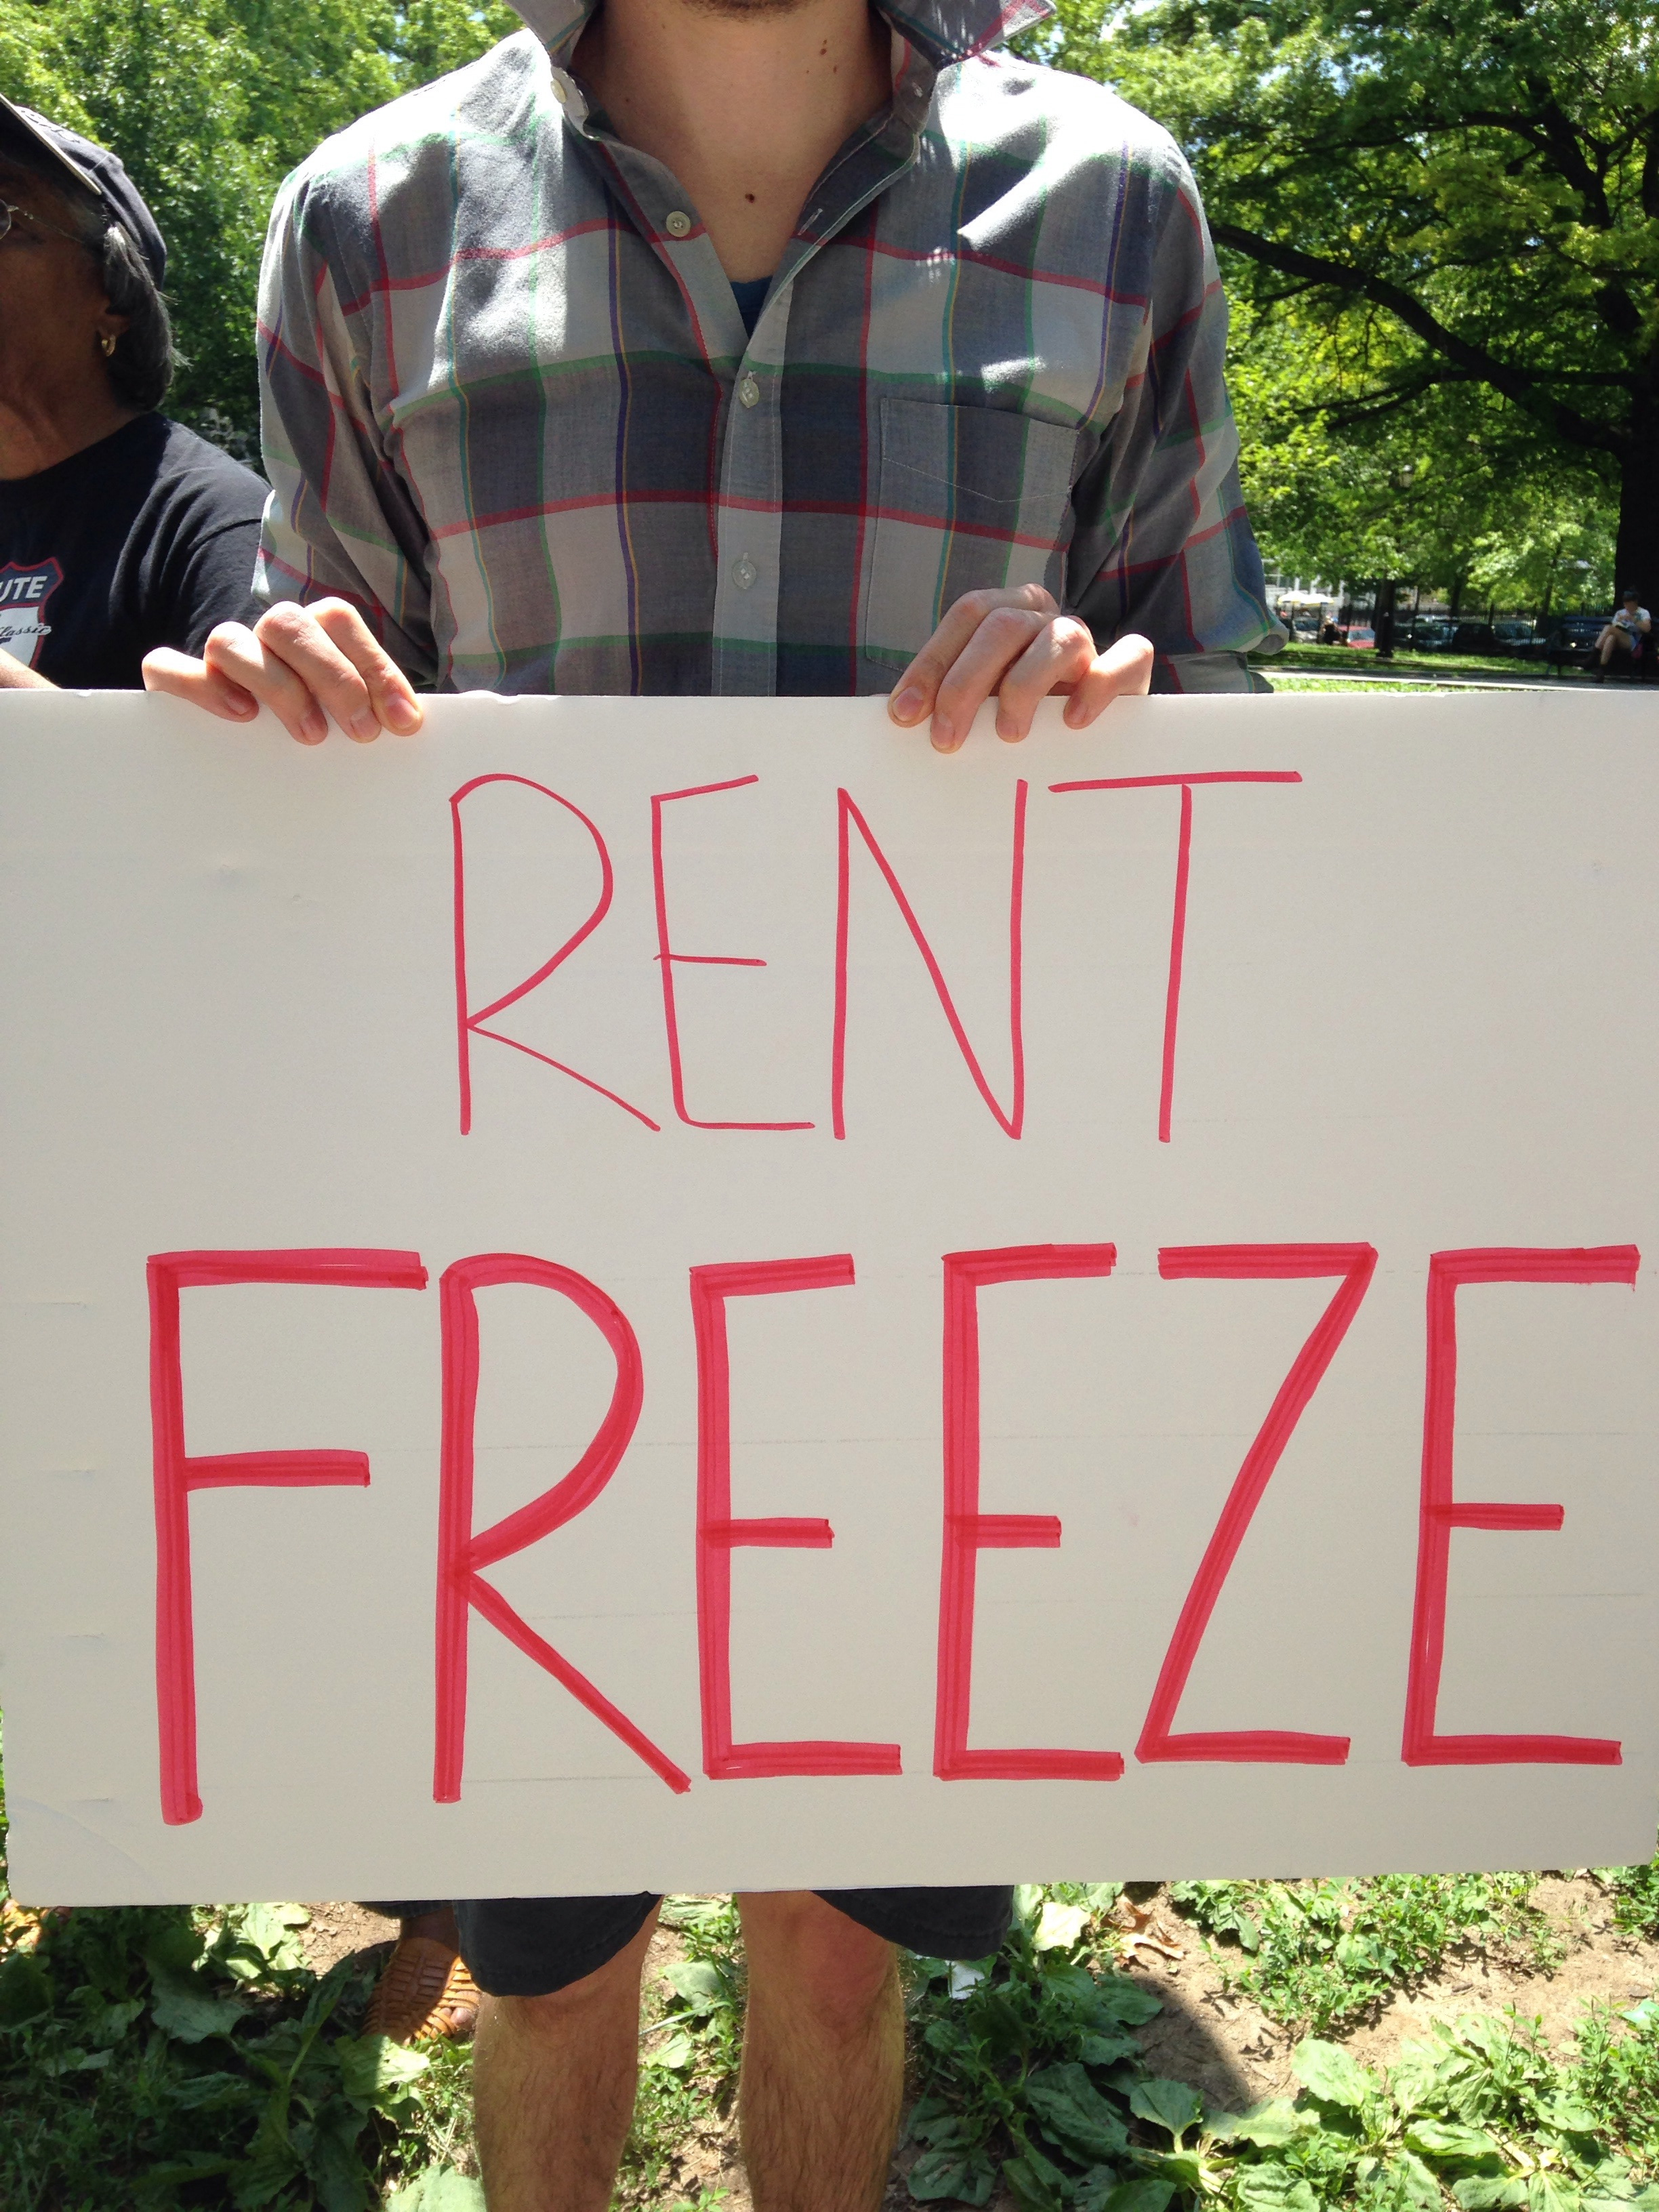 Clear message from tenants